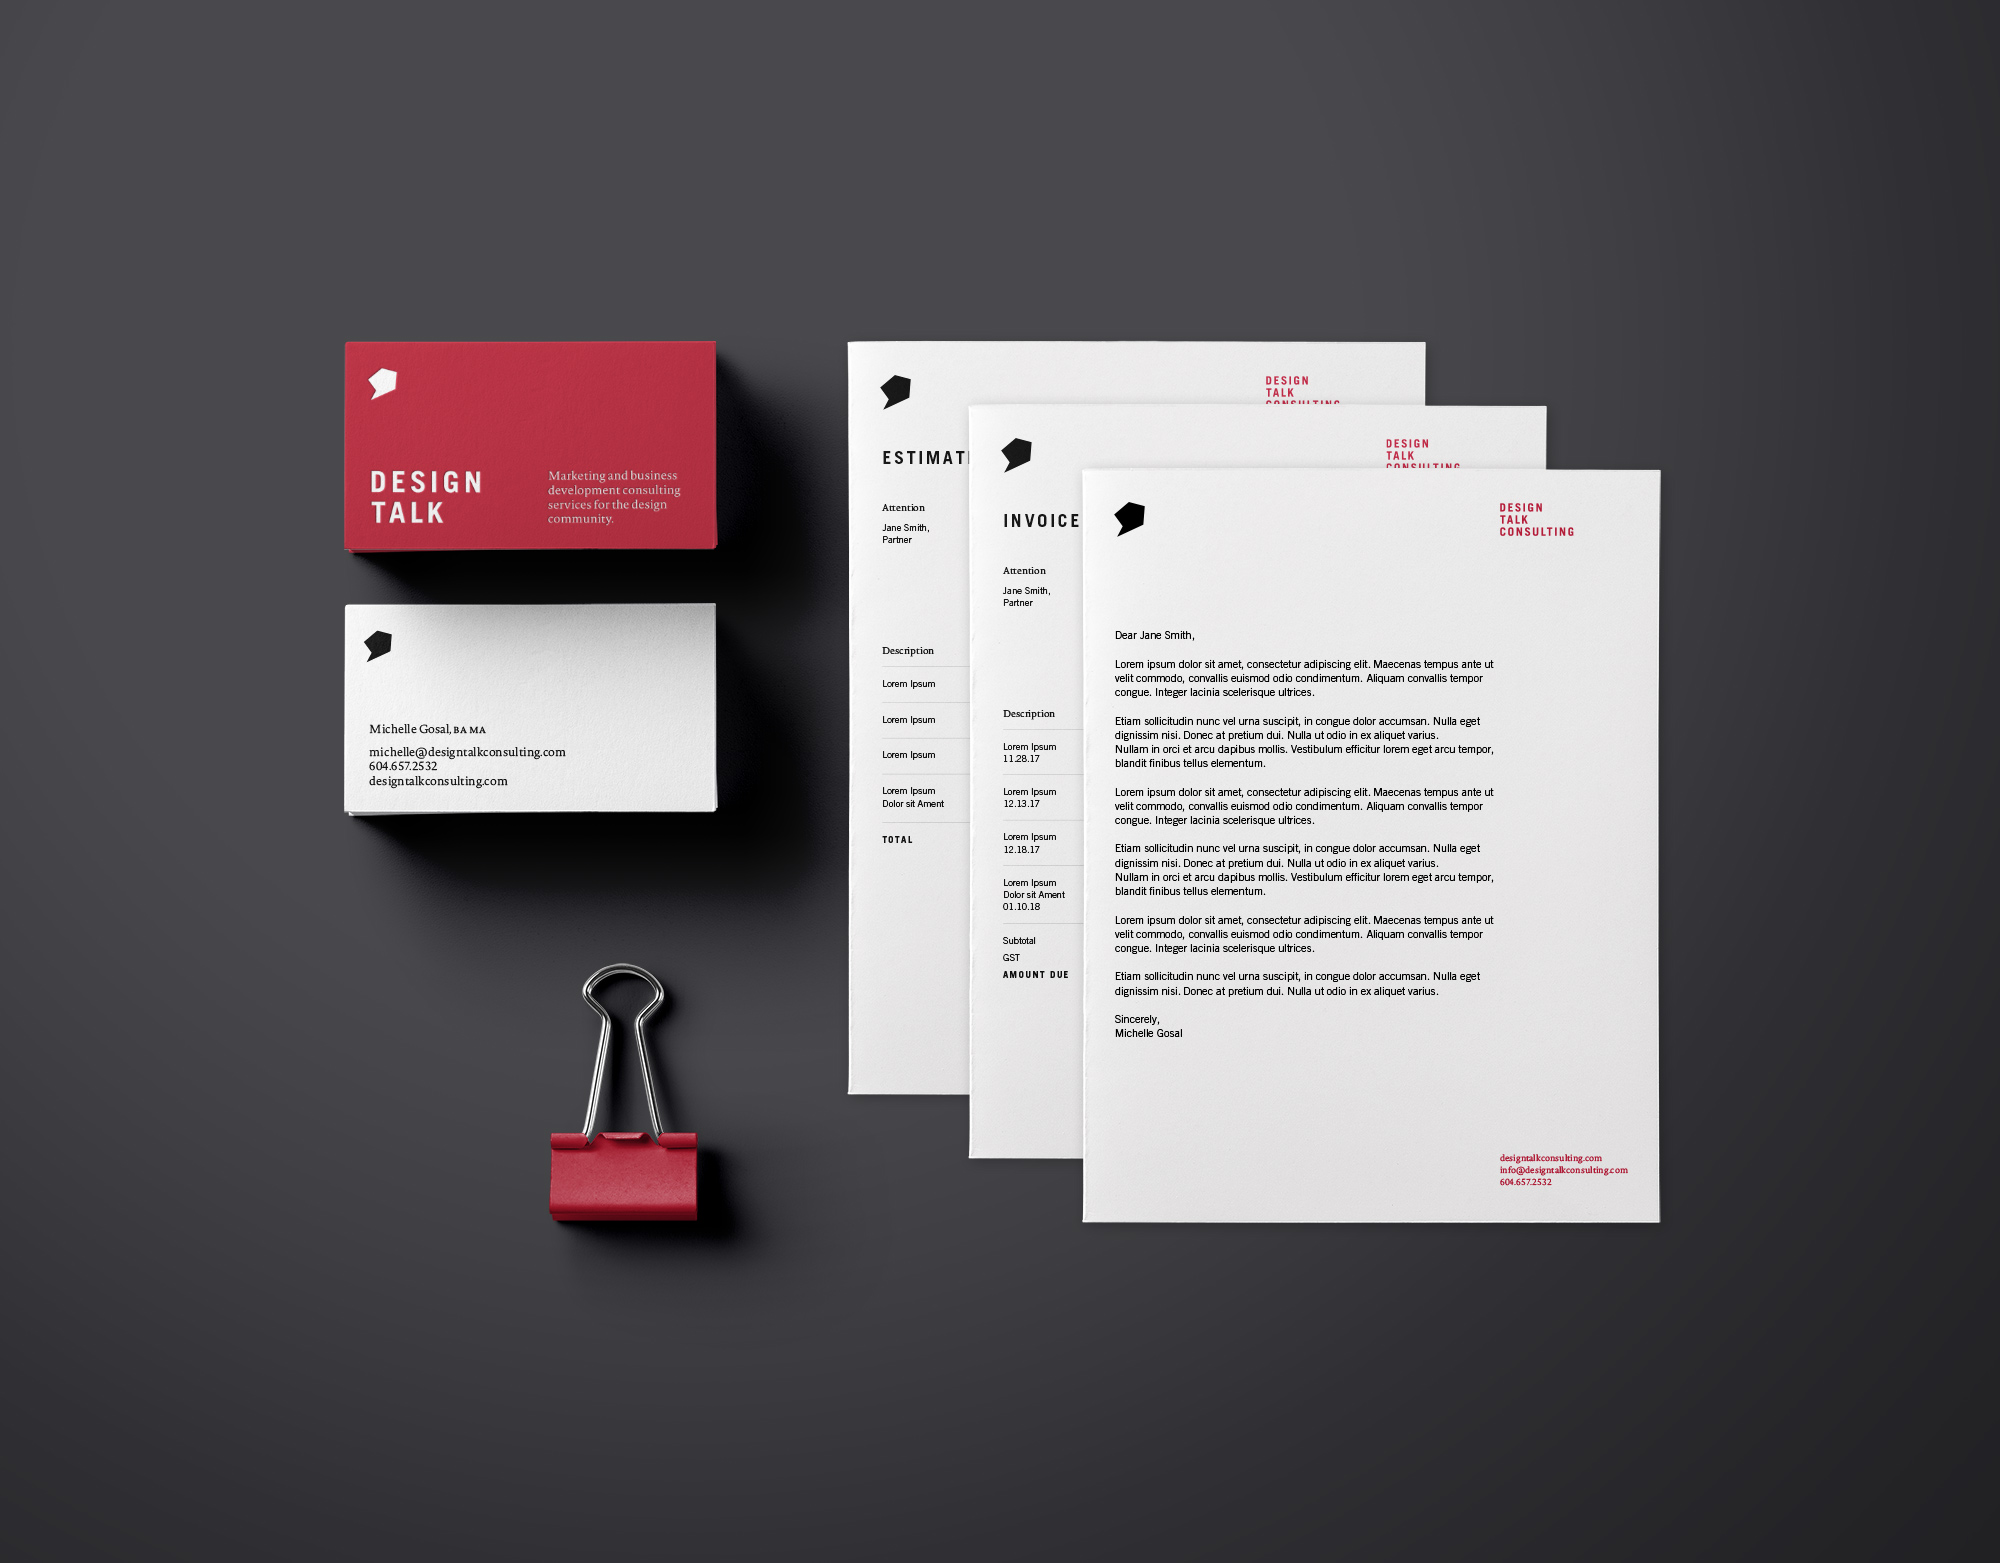 DesignTalk-Stationary-mock-v04.jpg